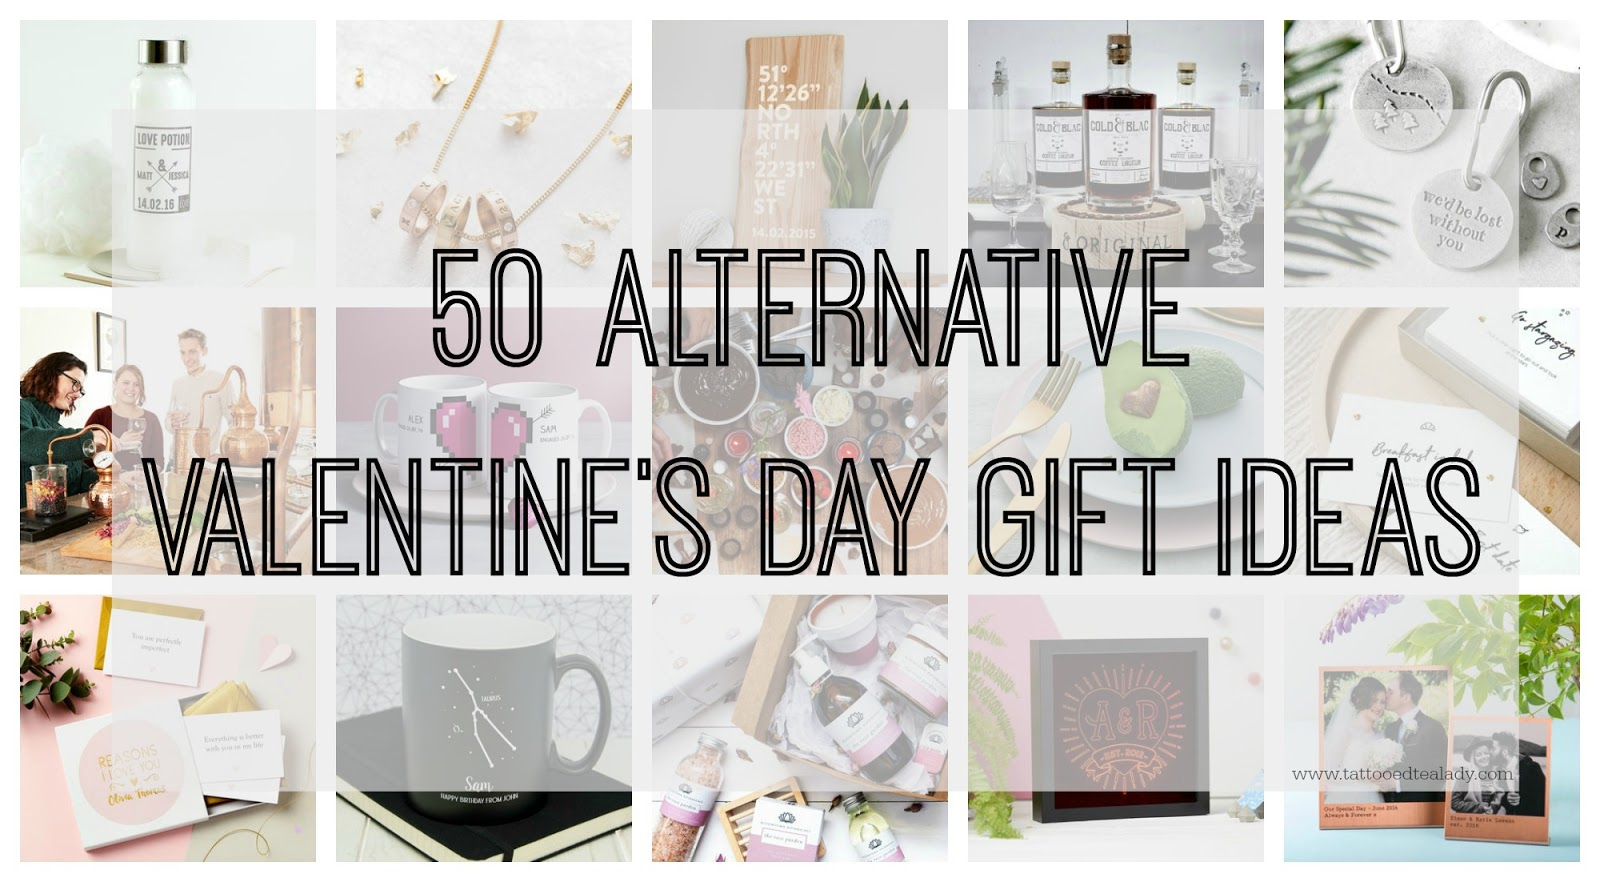 38 Valentines Day Gift Ideas to Pamper Your Loved Ones